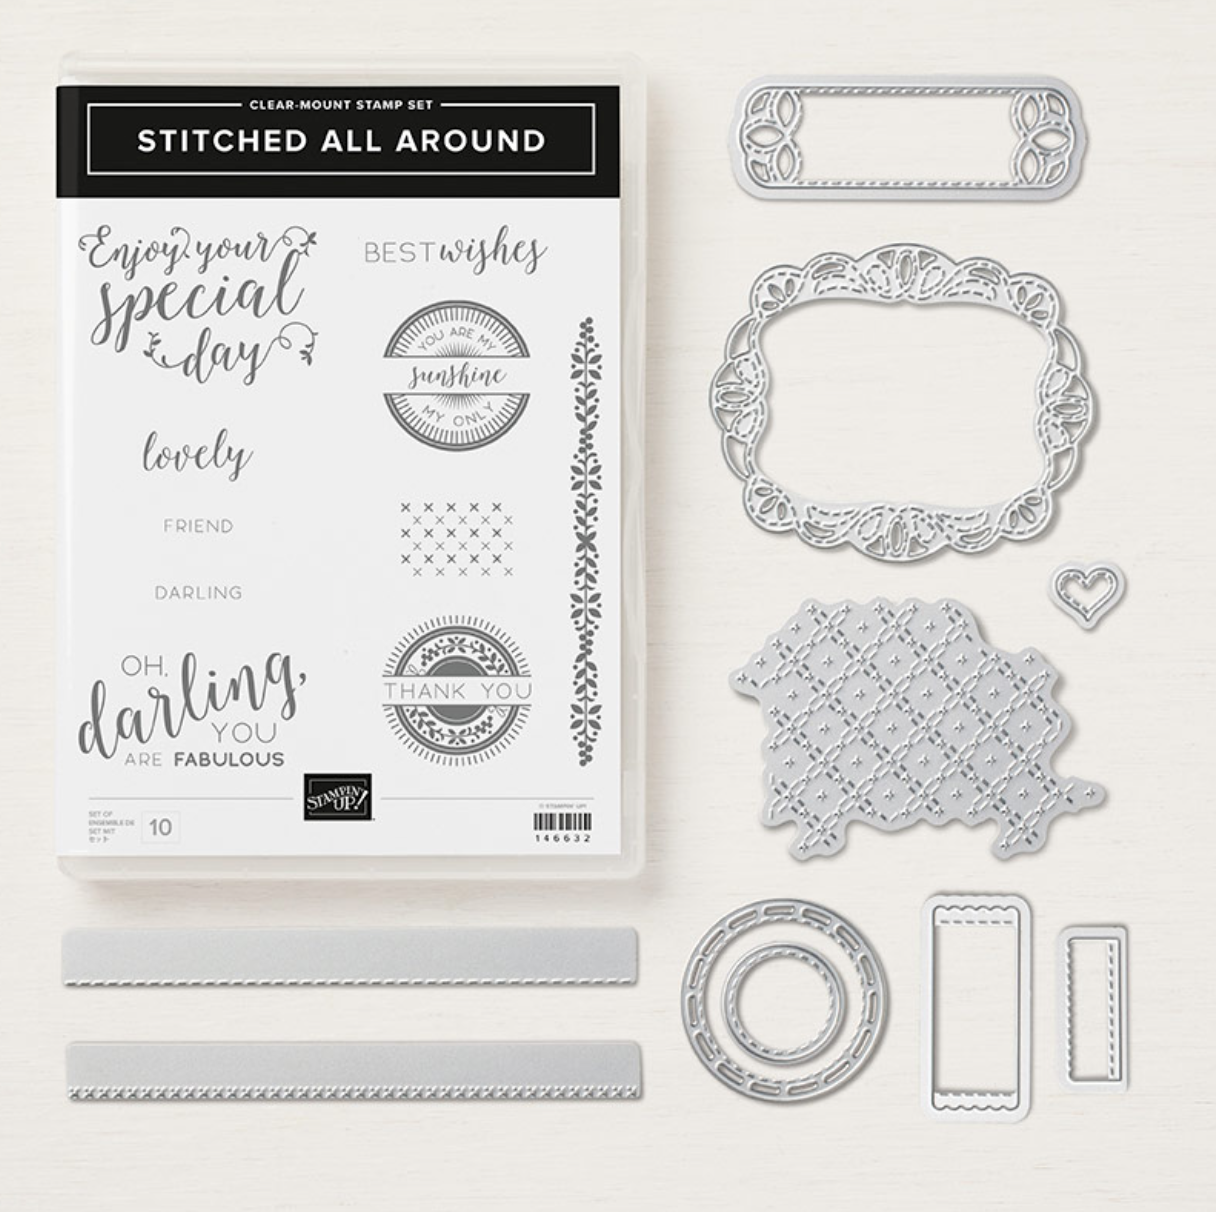 Stitched All Around Bundle from Stampin Up